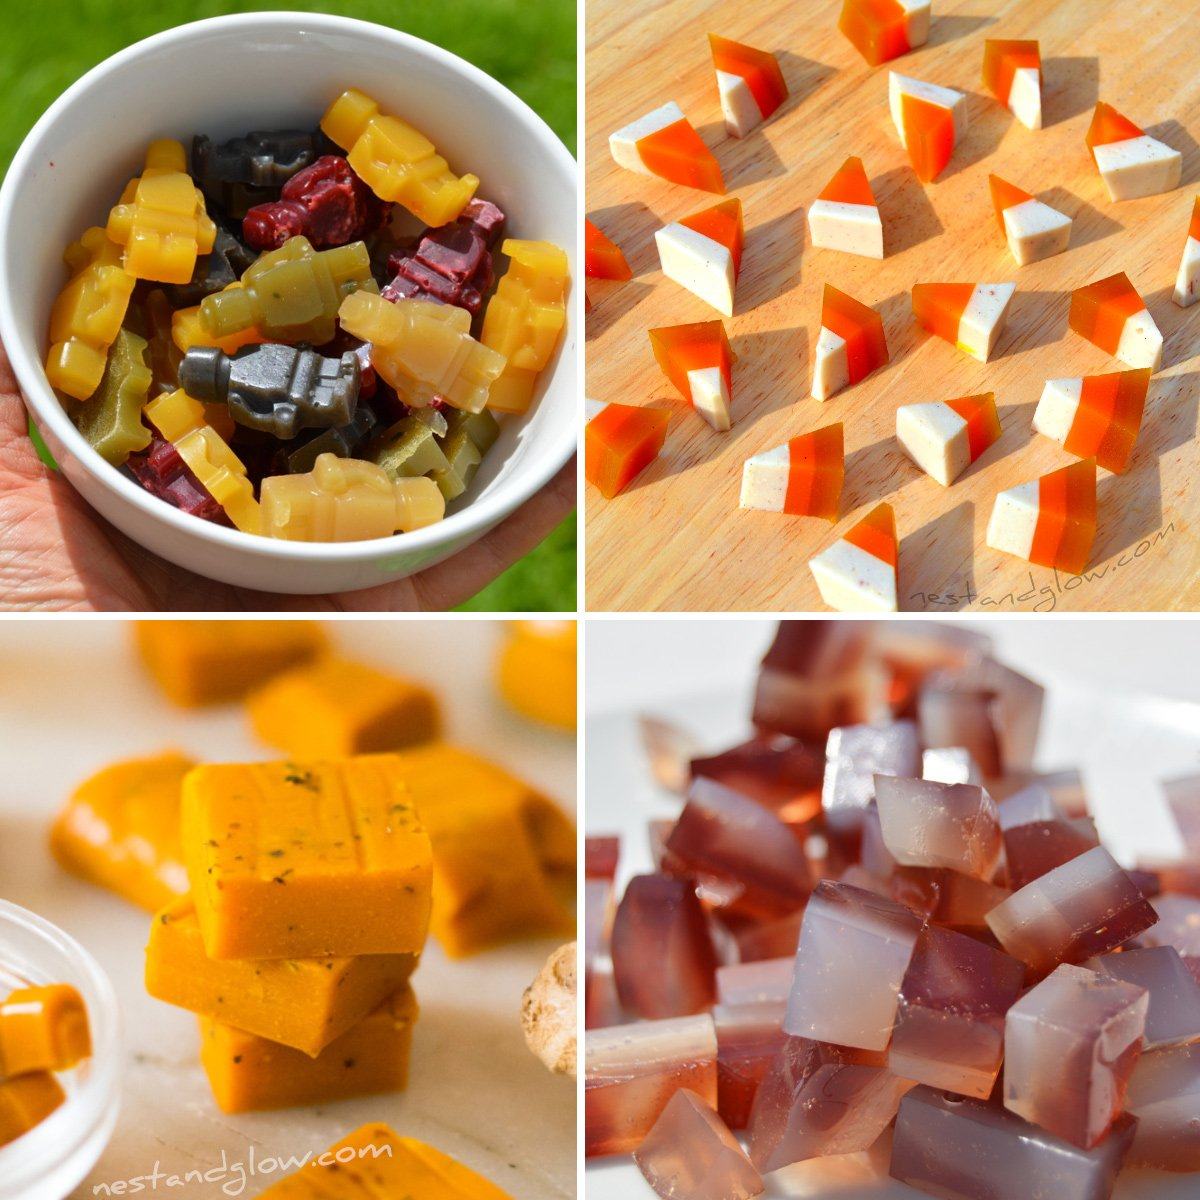 Healthy Jelly Sweets Recipes